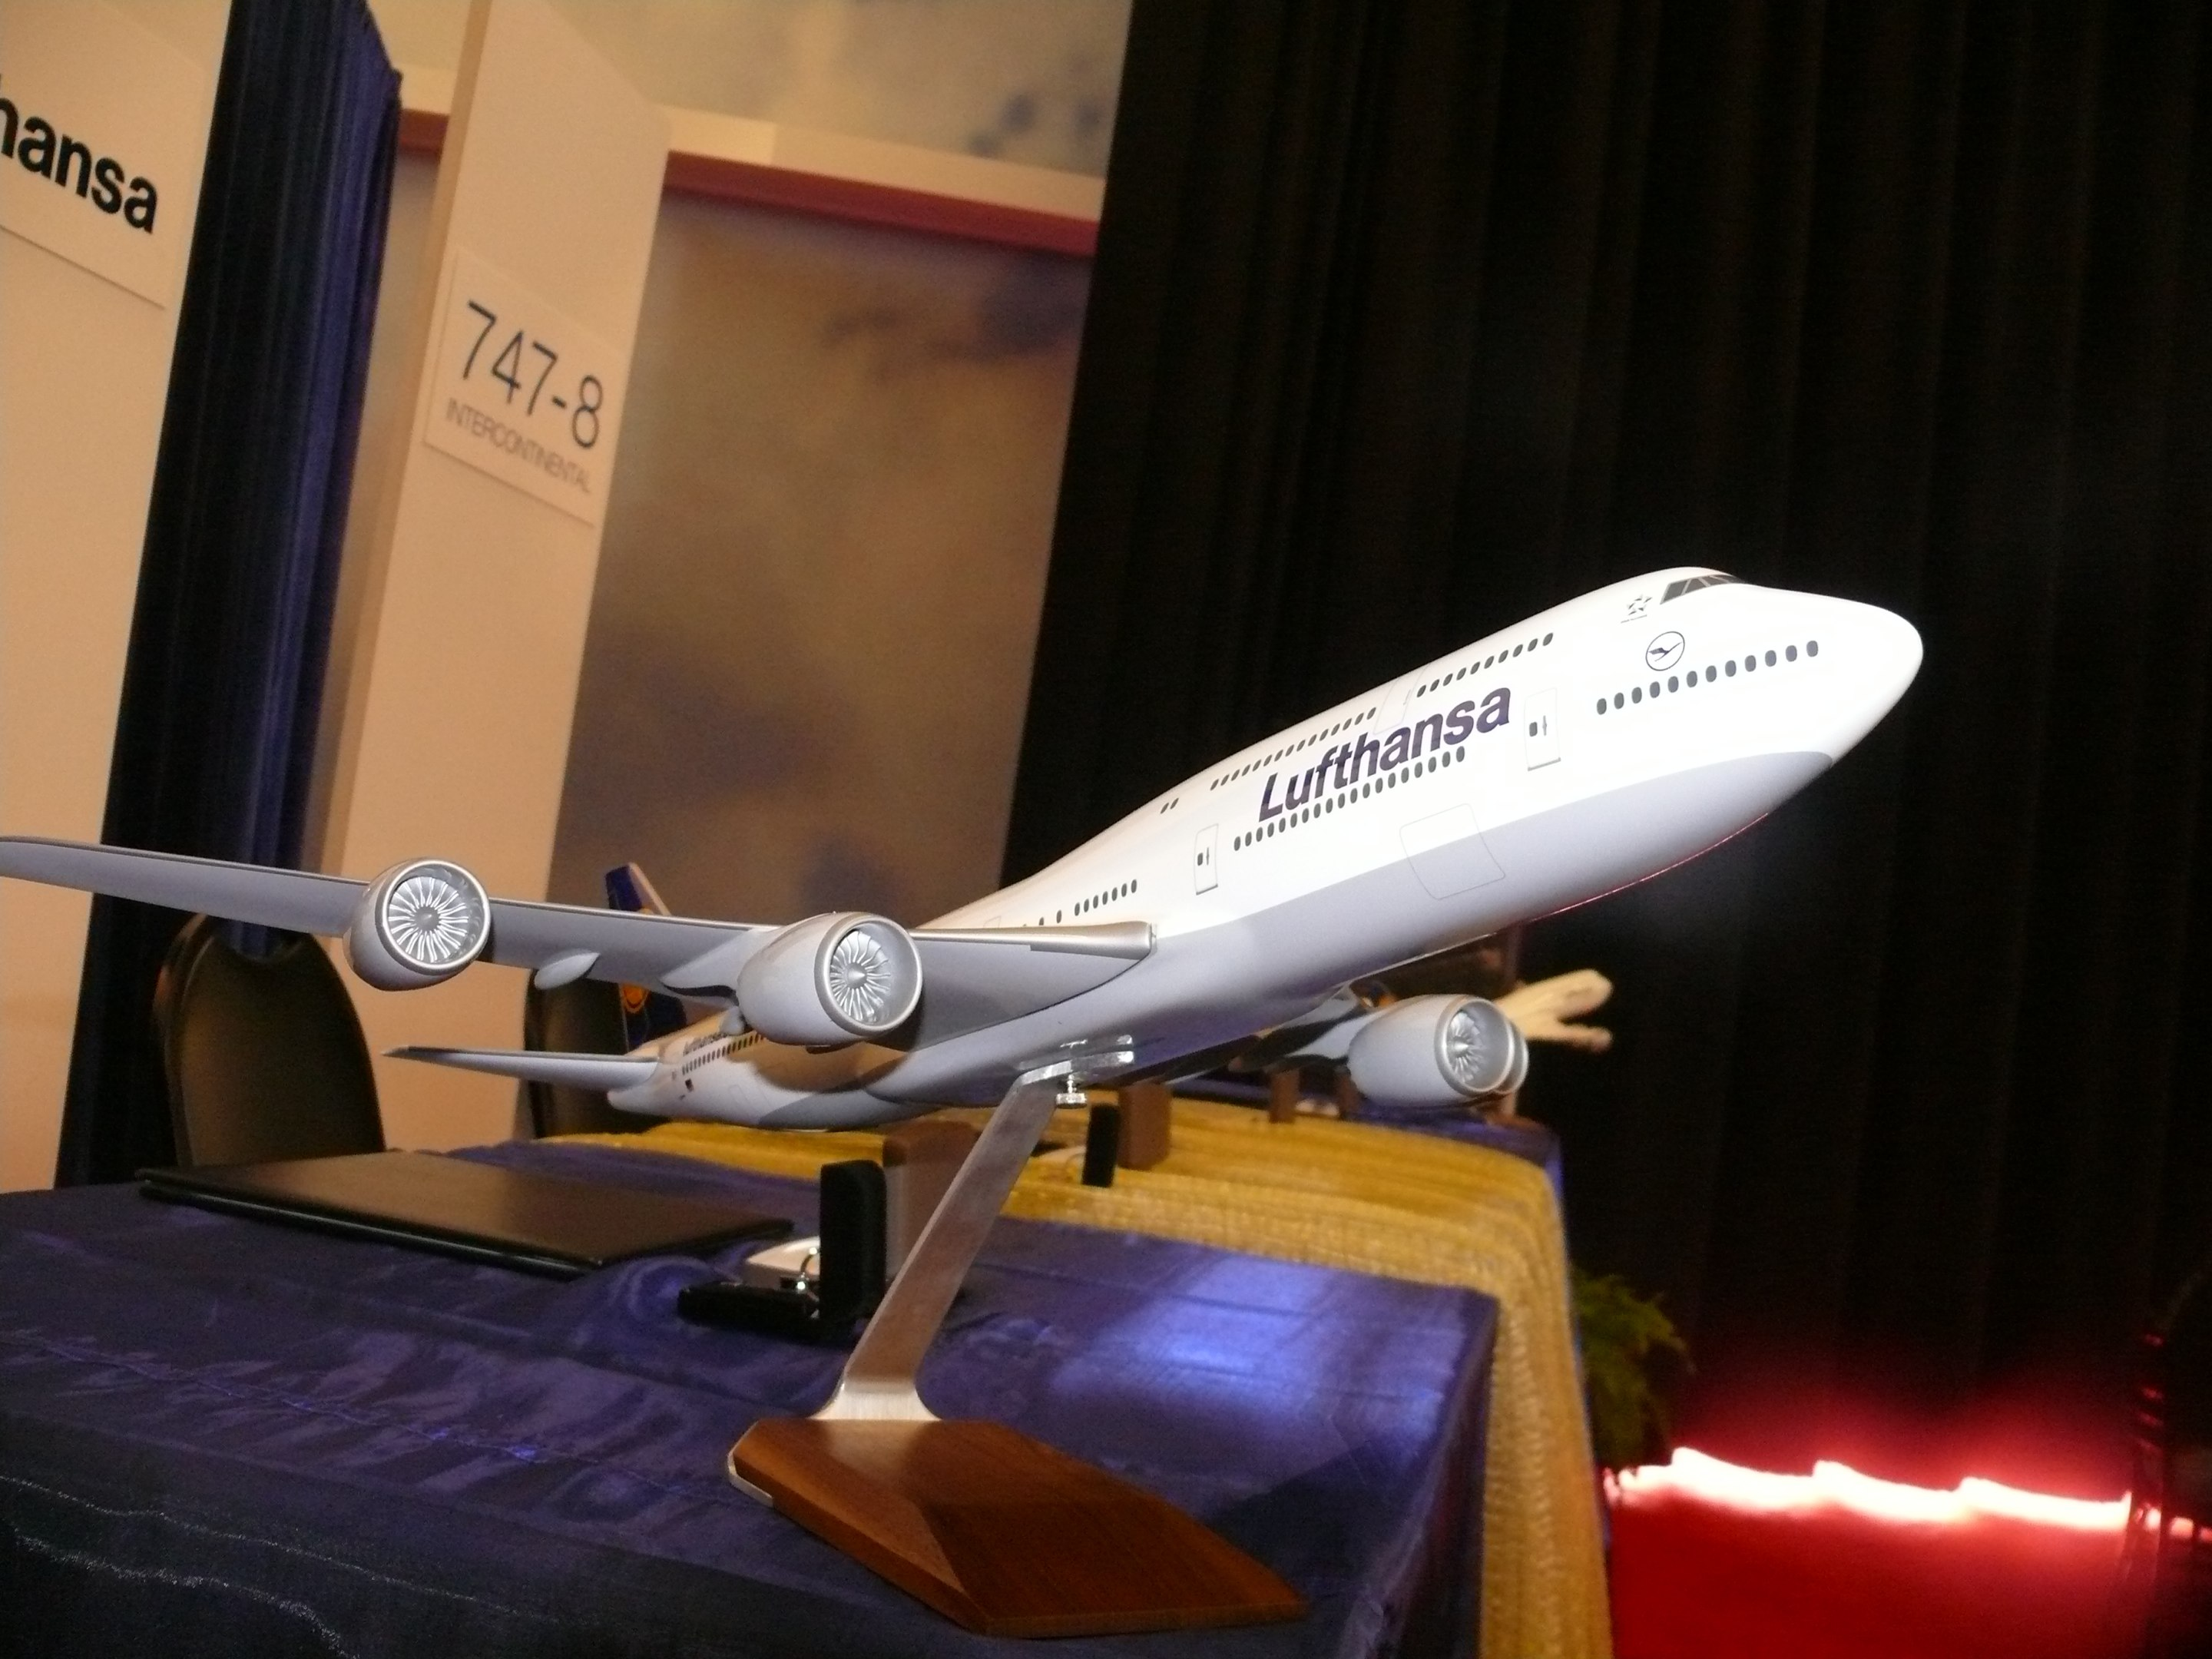 Lufthansa Boeing 747-8I delivery press conference. (Photo by Chris Sloan/Airchive.com)